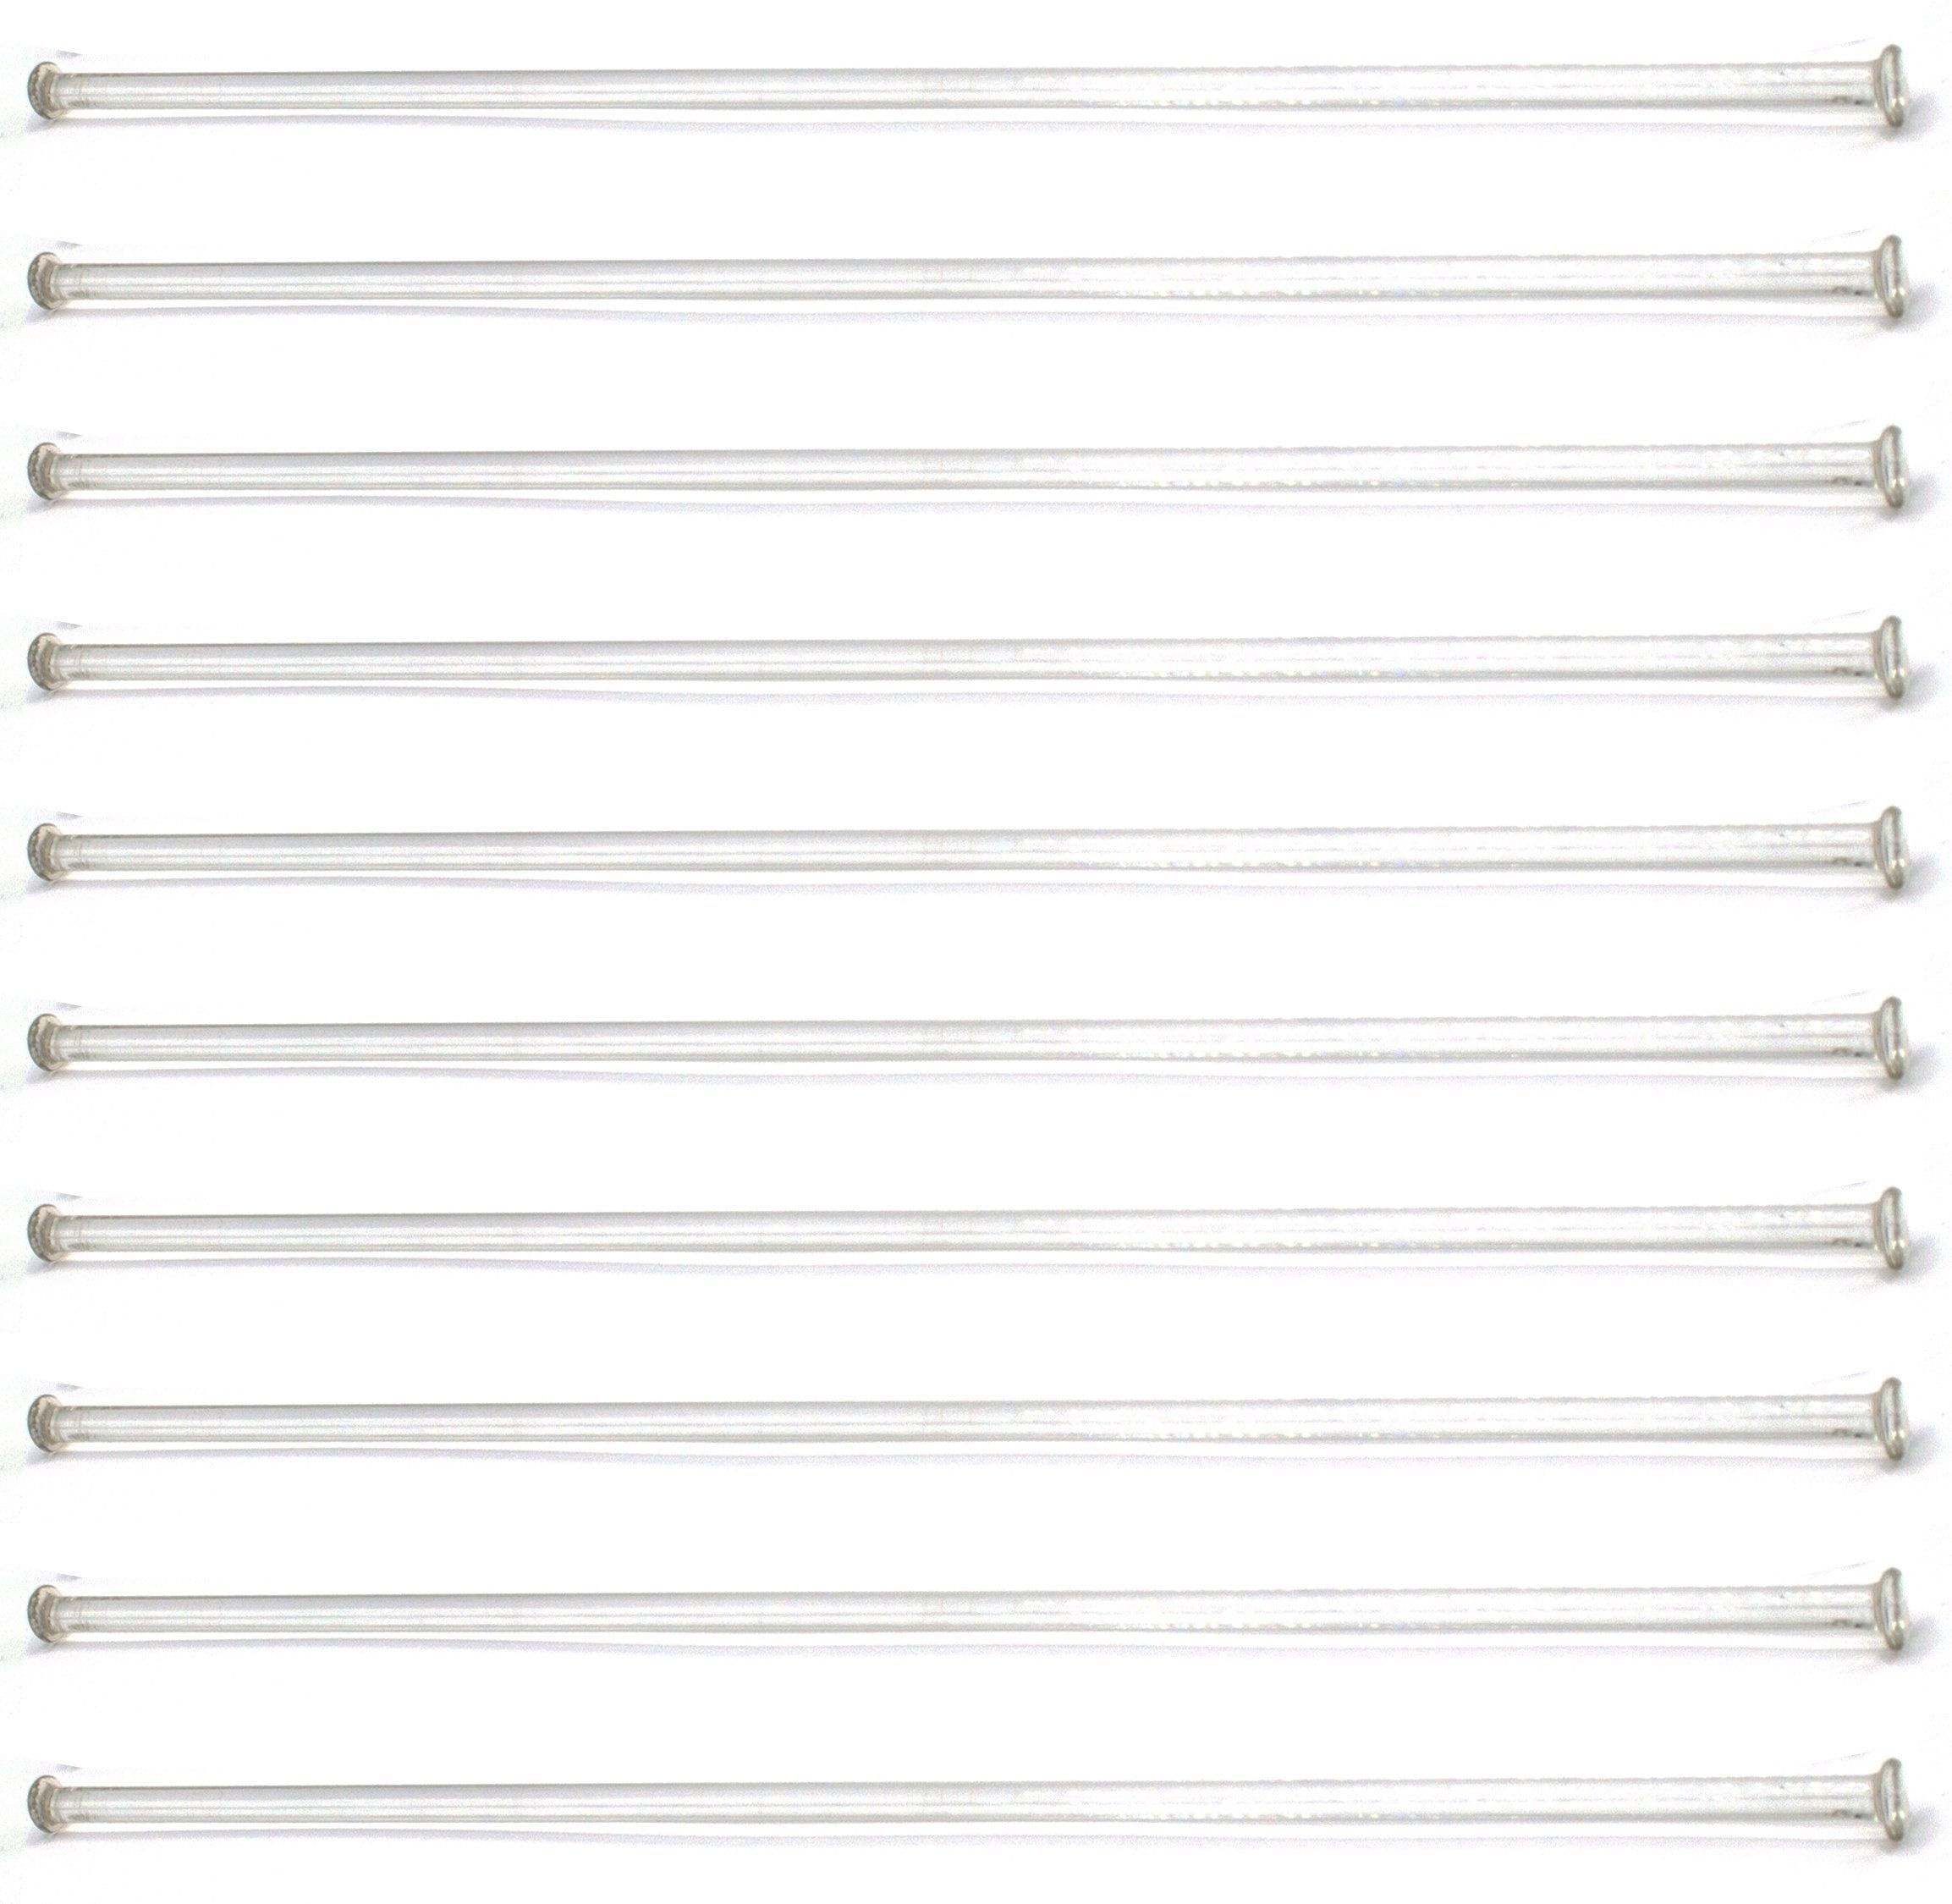 """10-Pack Of 12"""" (30Cm) Stirring Rod - Glass With Button Ends   Piano - Free Printable Blank Sheet Music"""